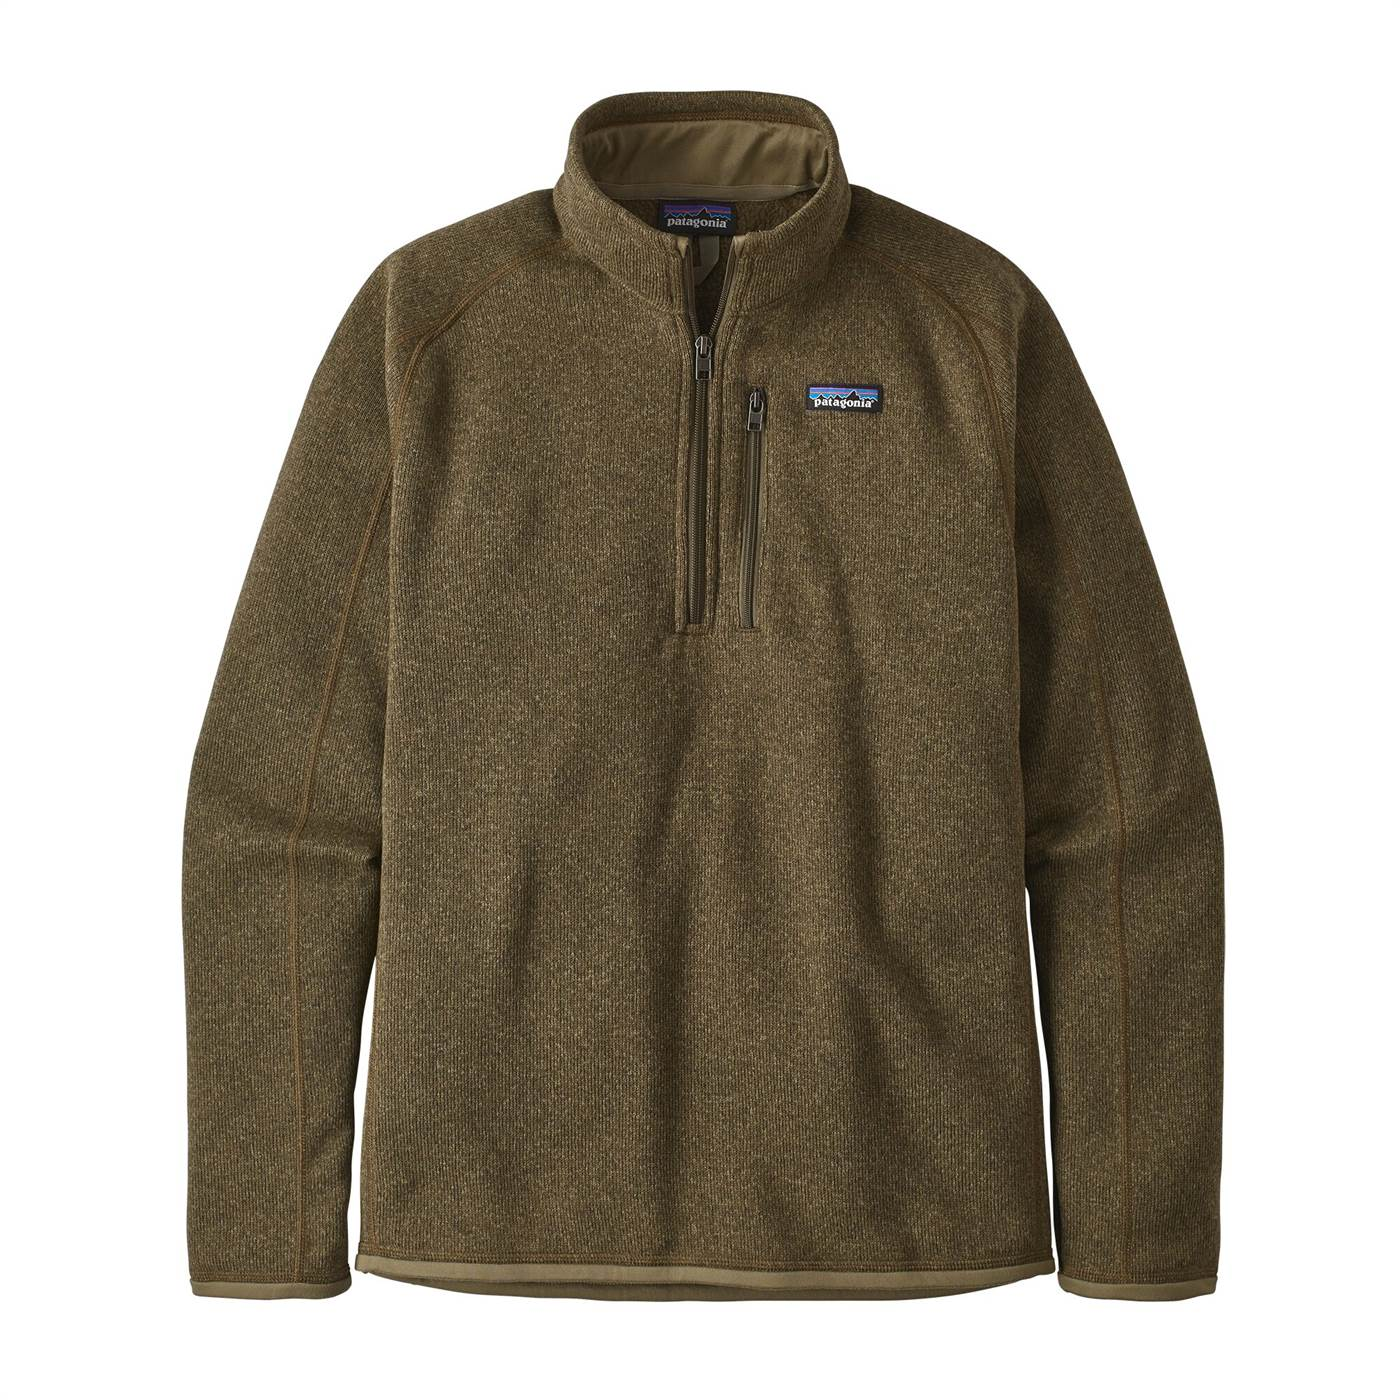 Better Sweater 1/4 Zip - Men's